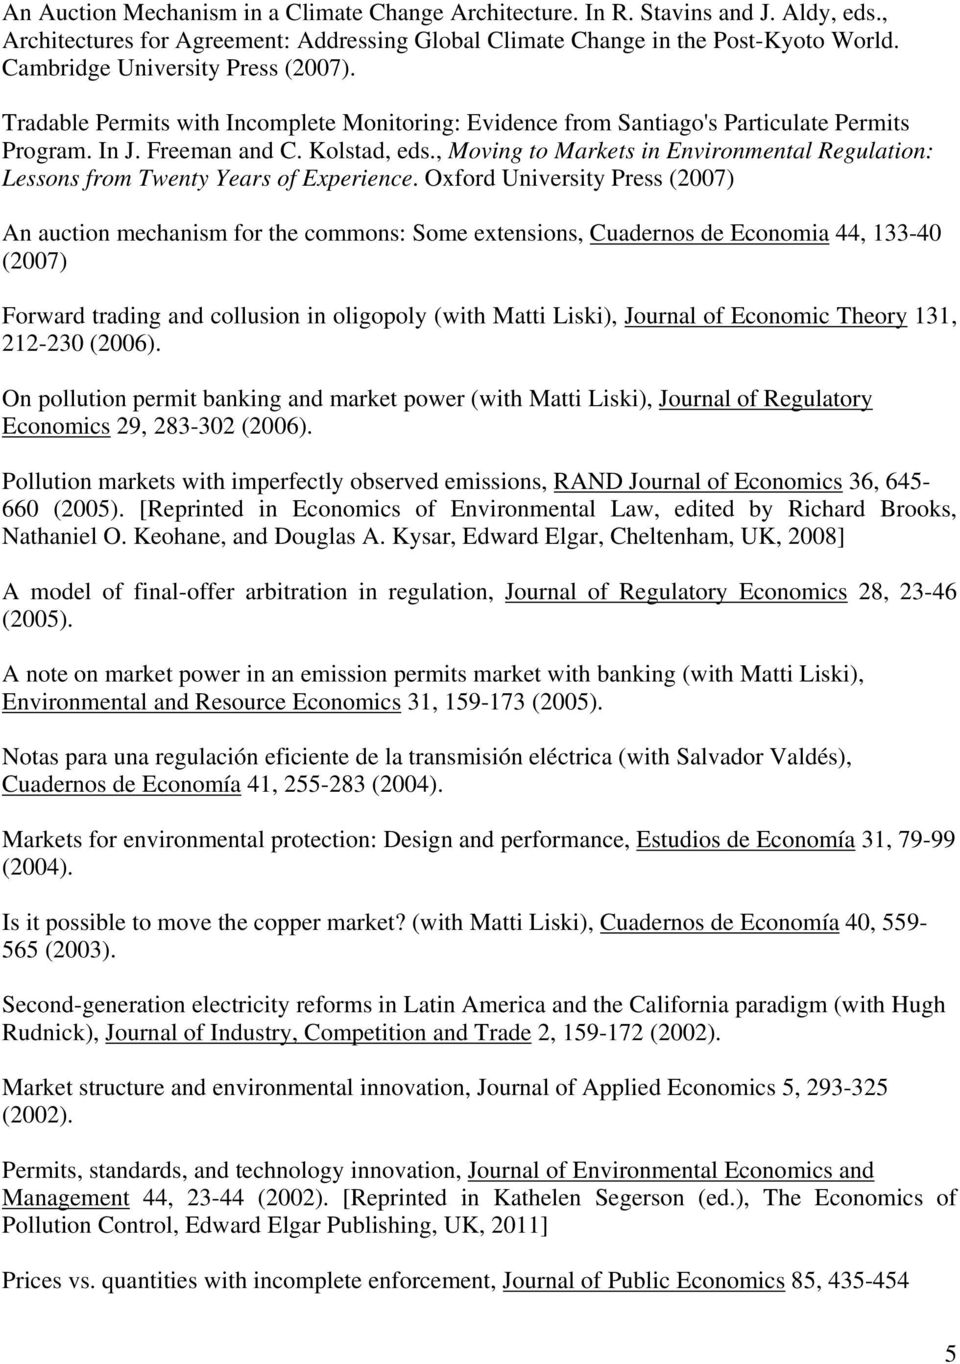 , Moving to Markets in Environmental Regulation: Lessons from Twenty Years of Experience.